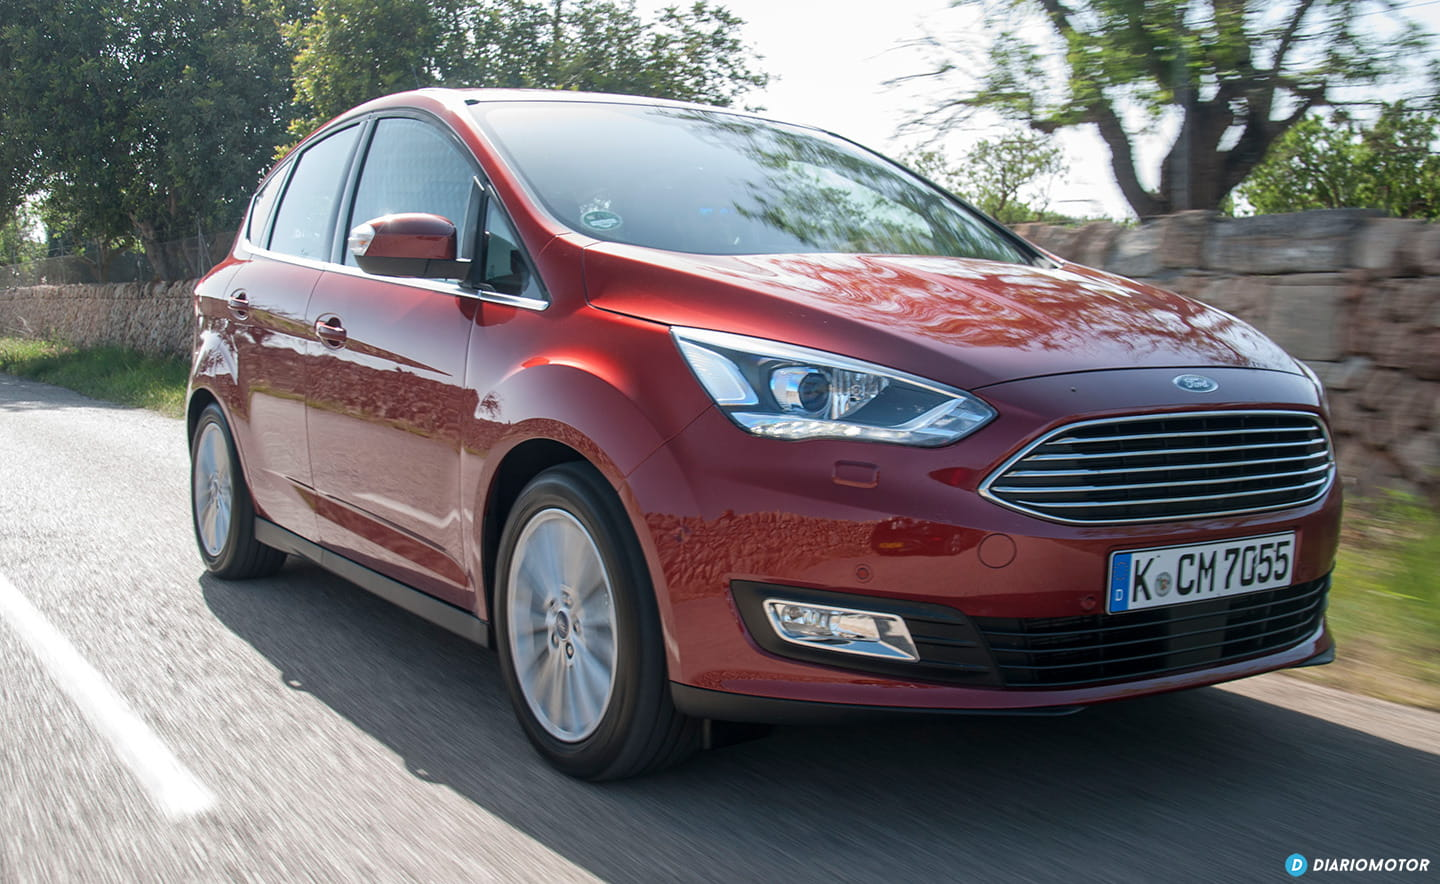 Ford Grand C Max 1.0 Ecoboost 125 kody promocyjne do bet at home - – forum – chip.pl Auto Start Stop Titani 16.800€